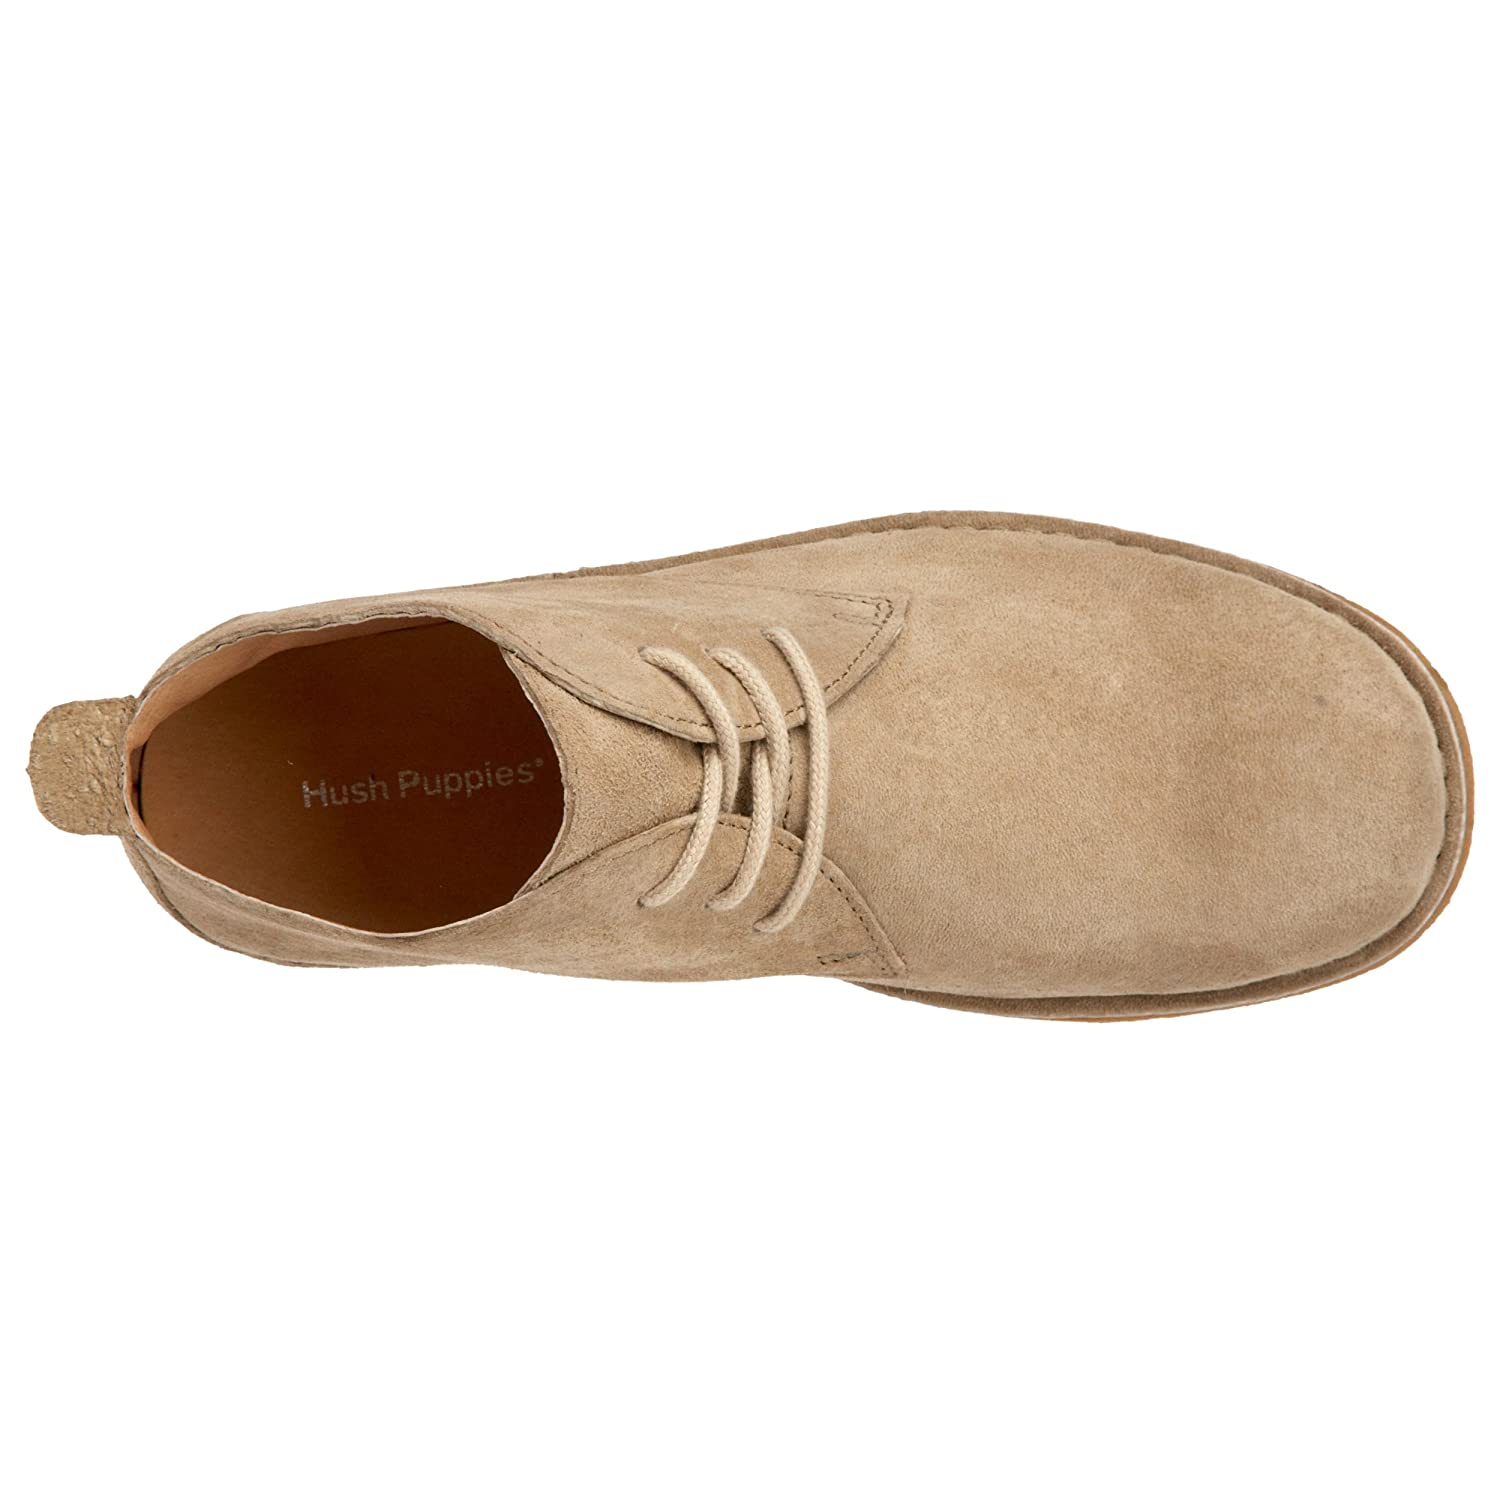 2e3b32e36c11 Hush Puppies Men s Desert Taupe H1272935B 6 UK  Amazon.co.uk  Shoes   Bags